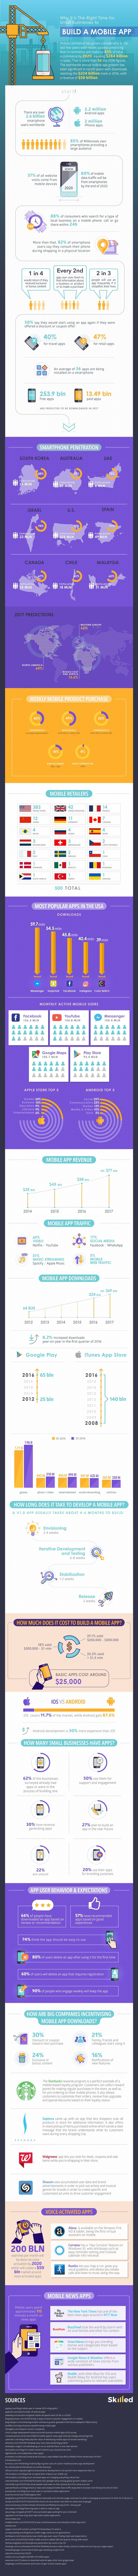 Why It Is the Right Time for Small Businesses to Build a Mobile App [Infographic]